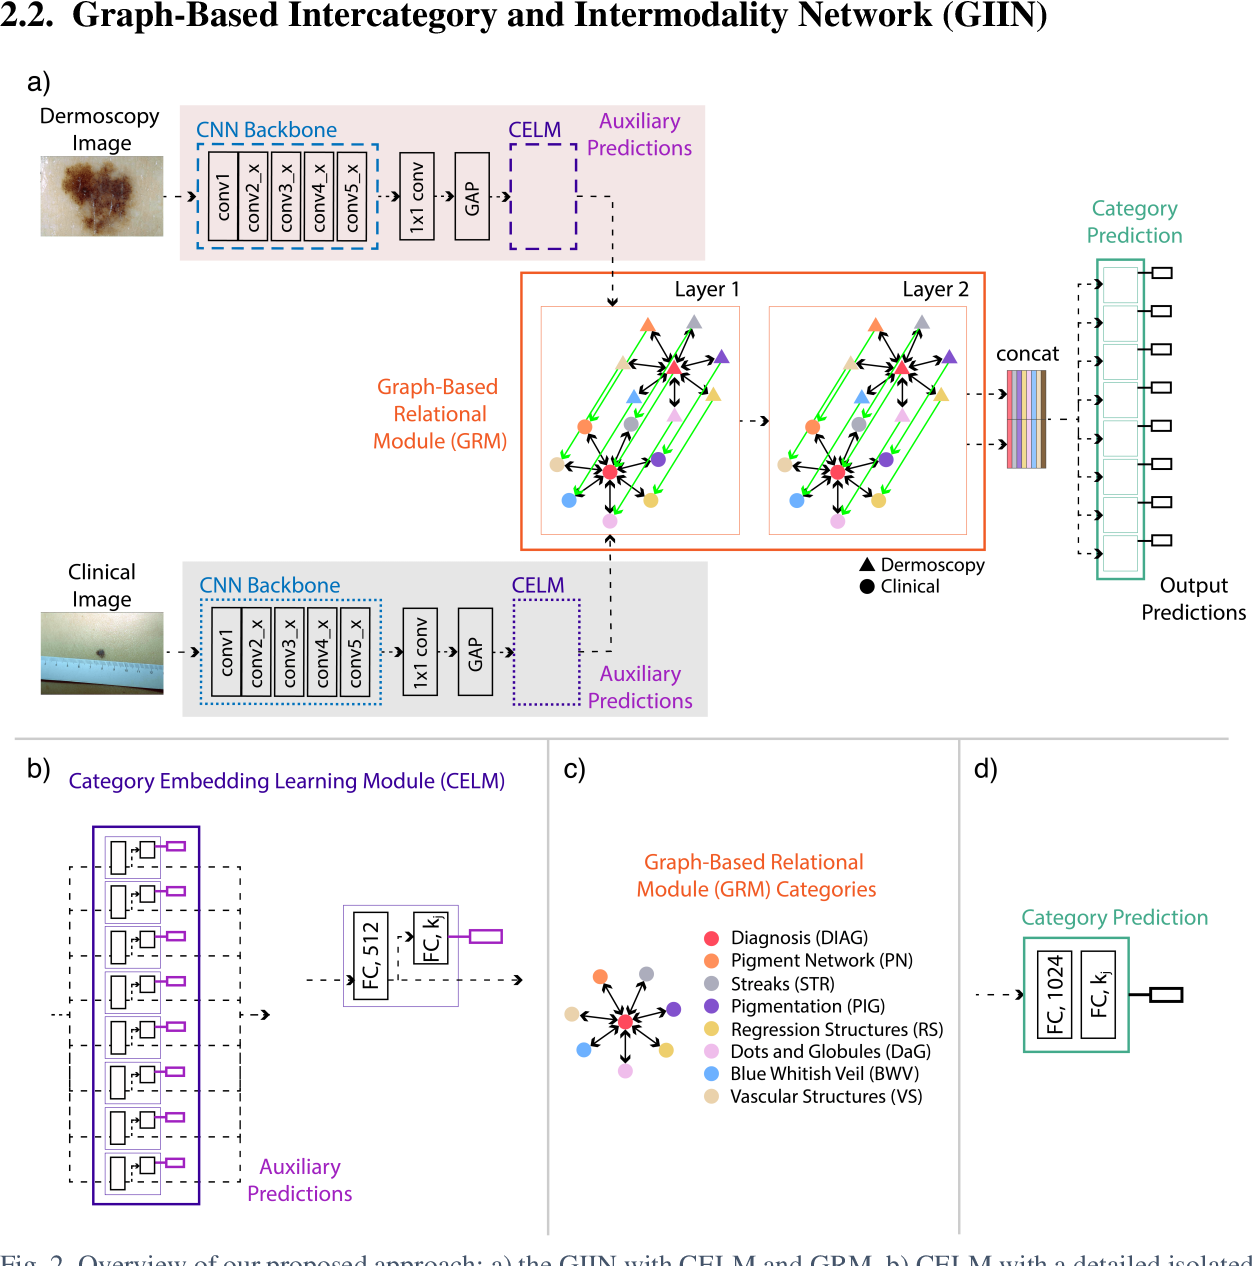 Figure 3 for Graph-Based Intercategory and Intermodality Network for Multilabel Classification and Melanoma Diagnosis of Skin Lesions in Dermoscopy and Clinical Images